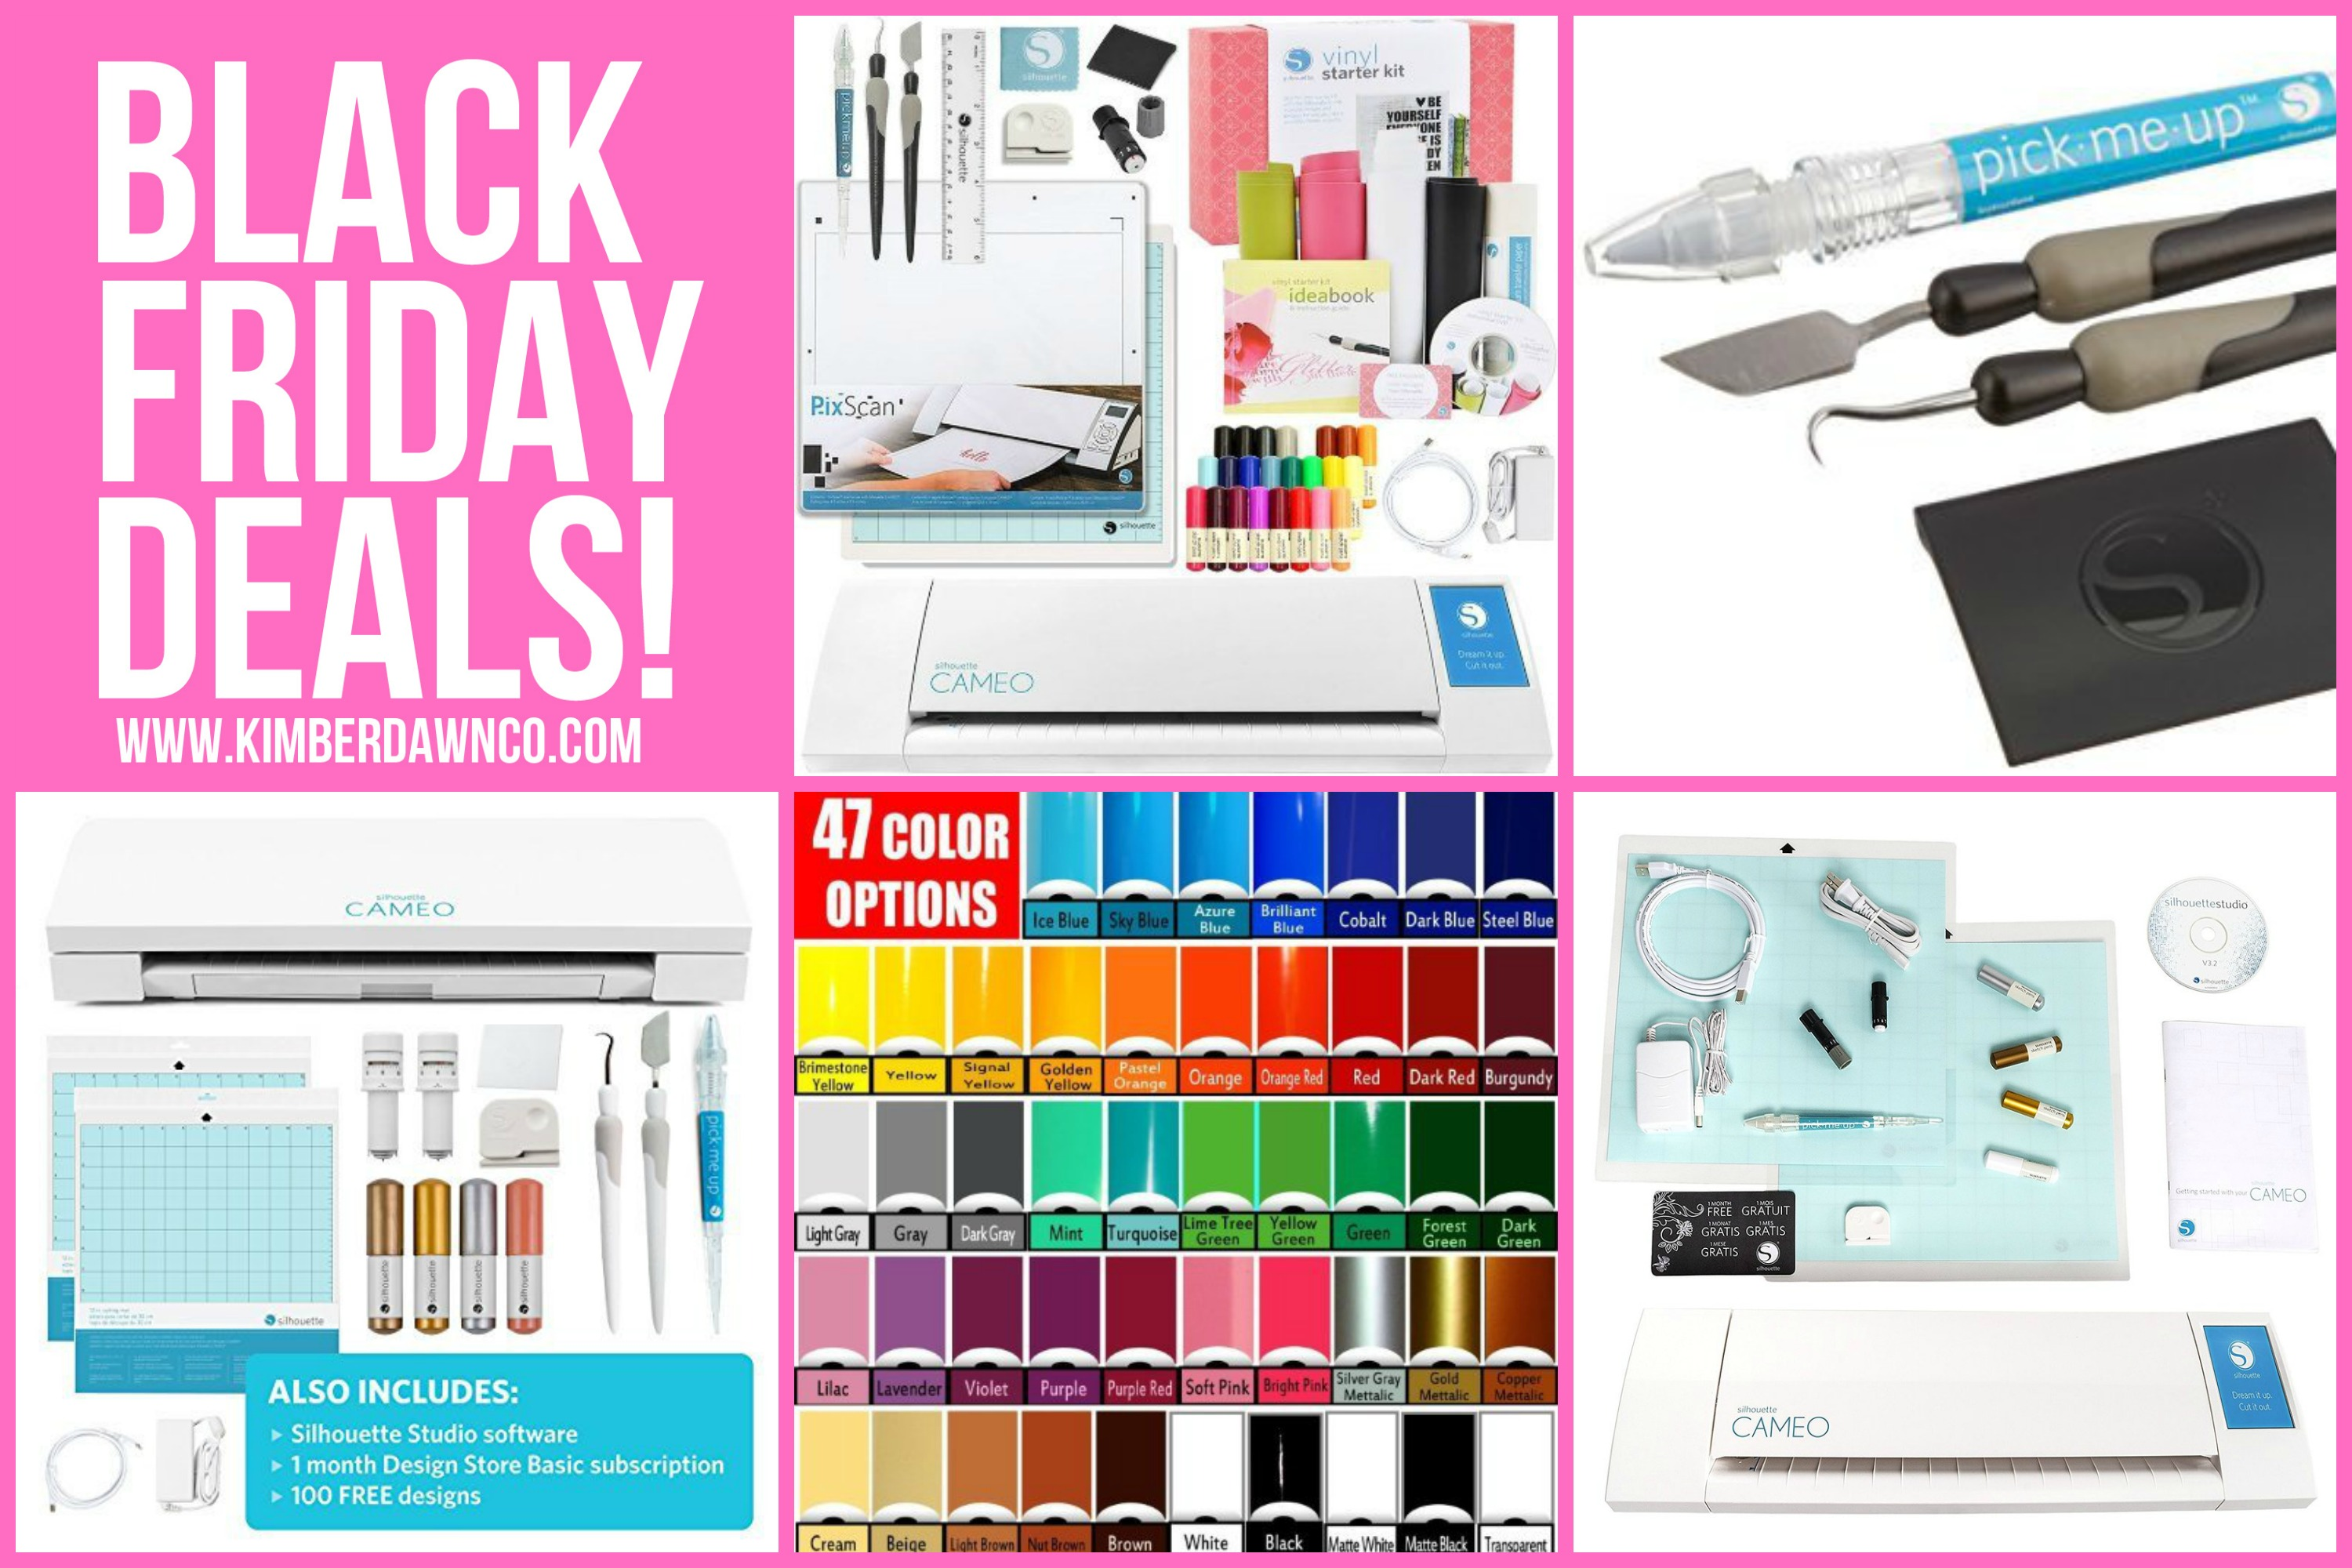 Silhouette CAMEO Black Friday Deals - Lowest prices on cutting machines - no coupon code needed. Silhouette CAMEO 3 machines and bundles on sale!